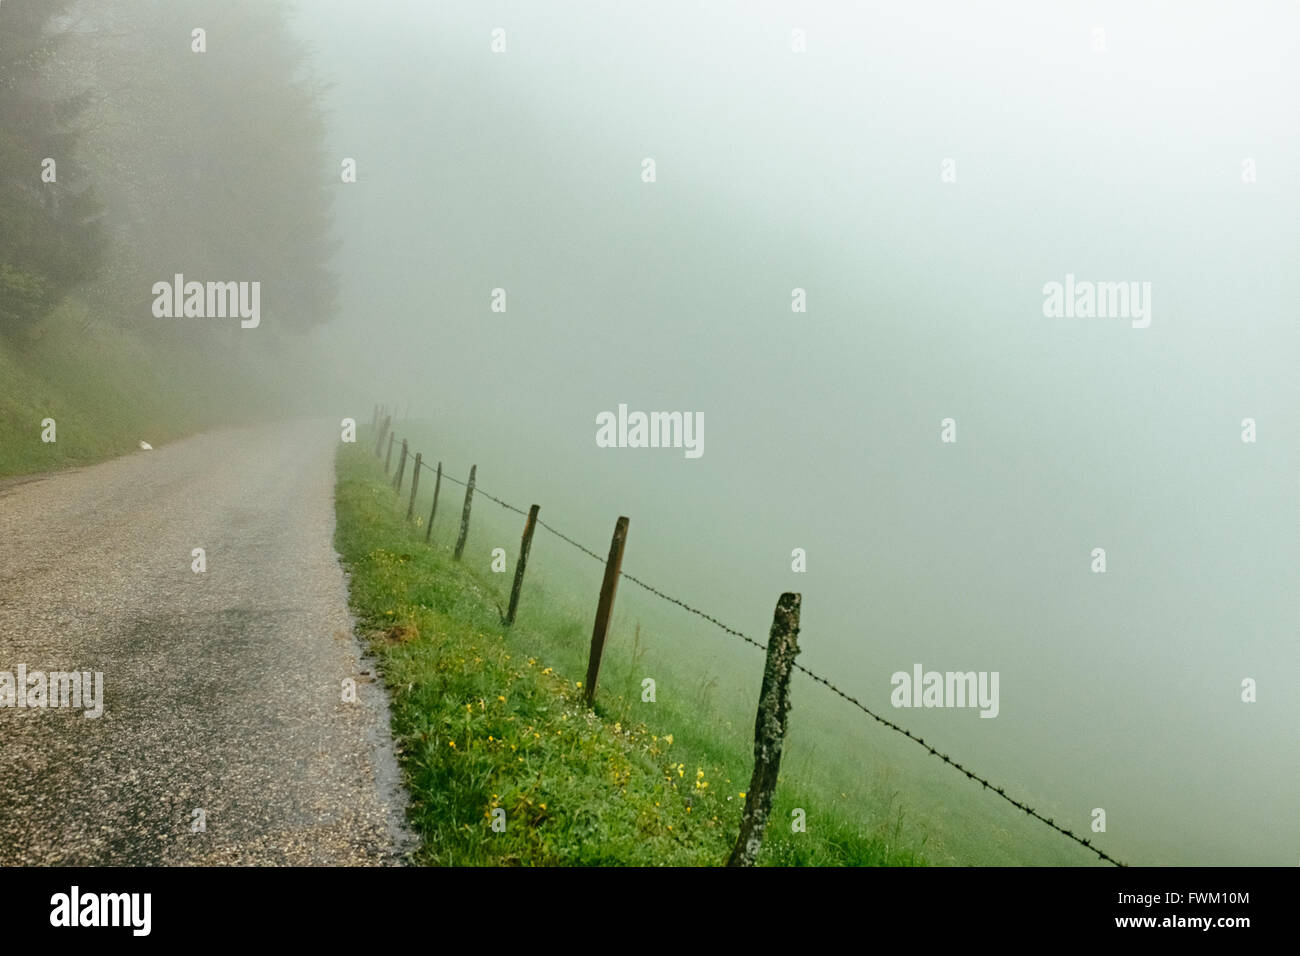 Road Against Sky During Foggy Weather - Stock Image